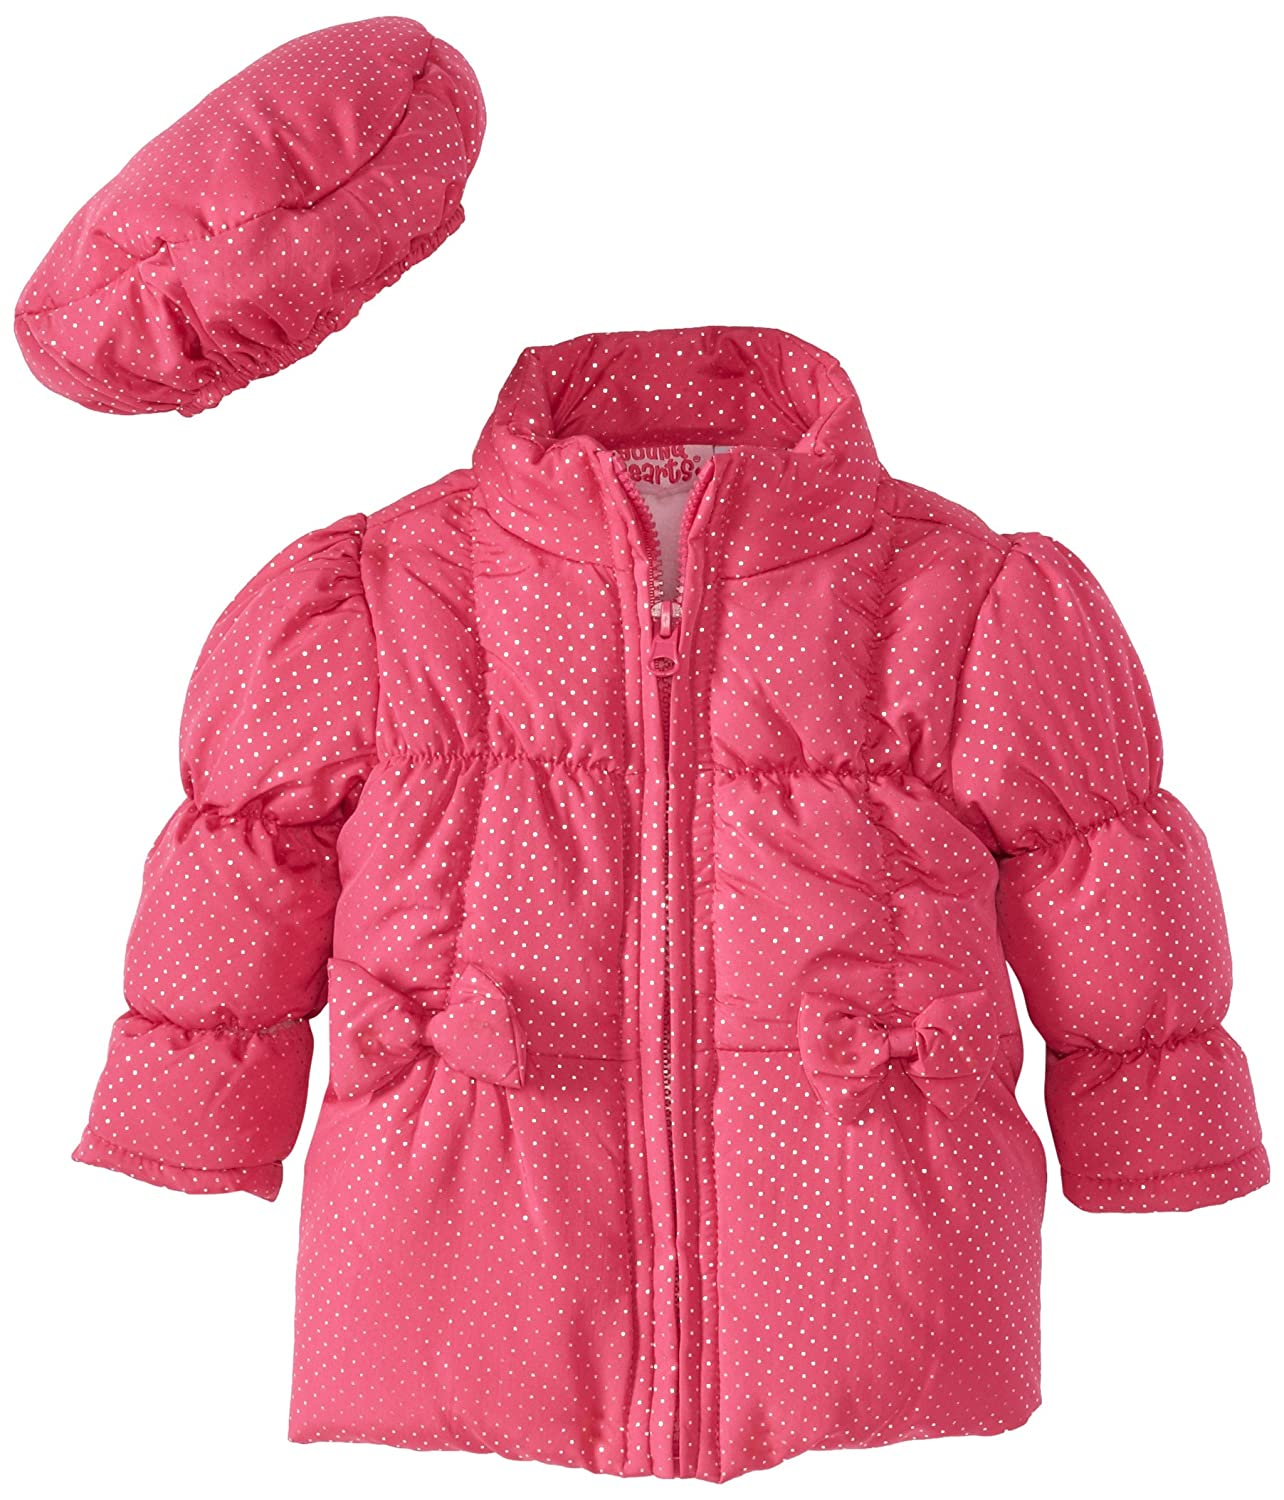 Young Hearts Baby Girls 2 Piece Bow Tie Pocket Jacket And Hat